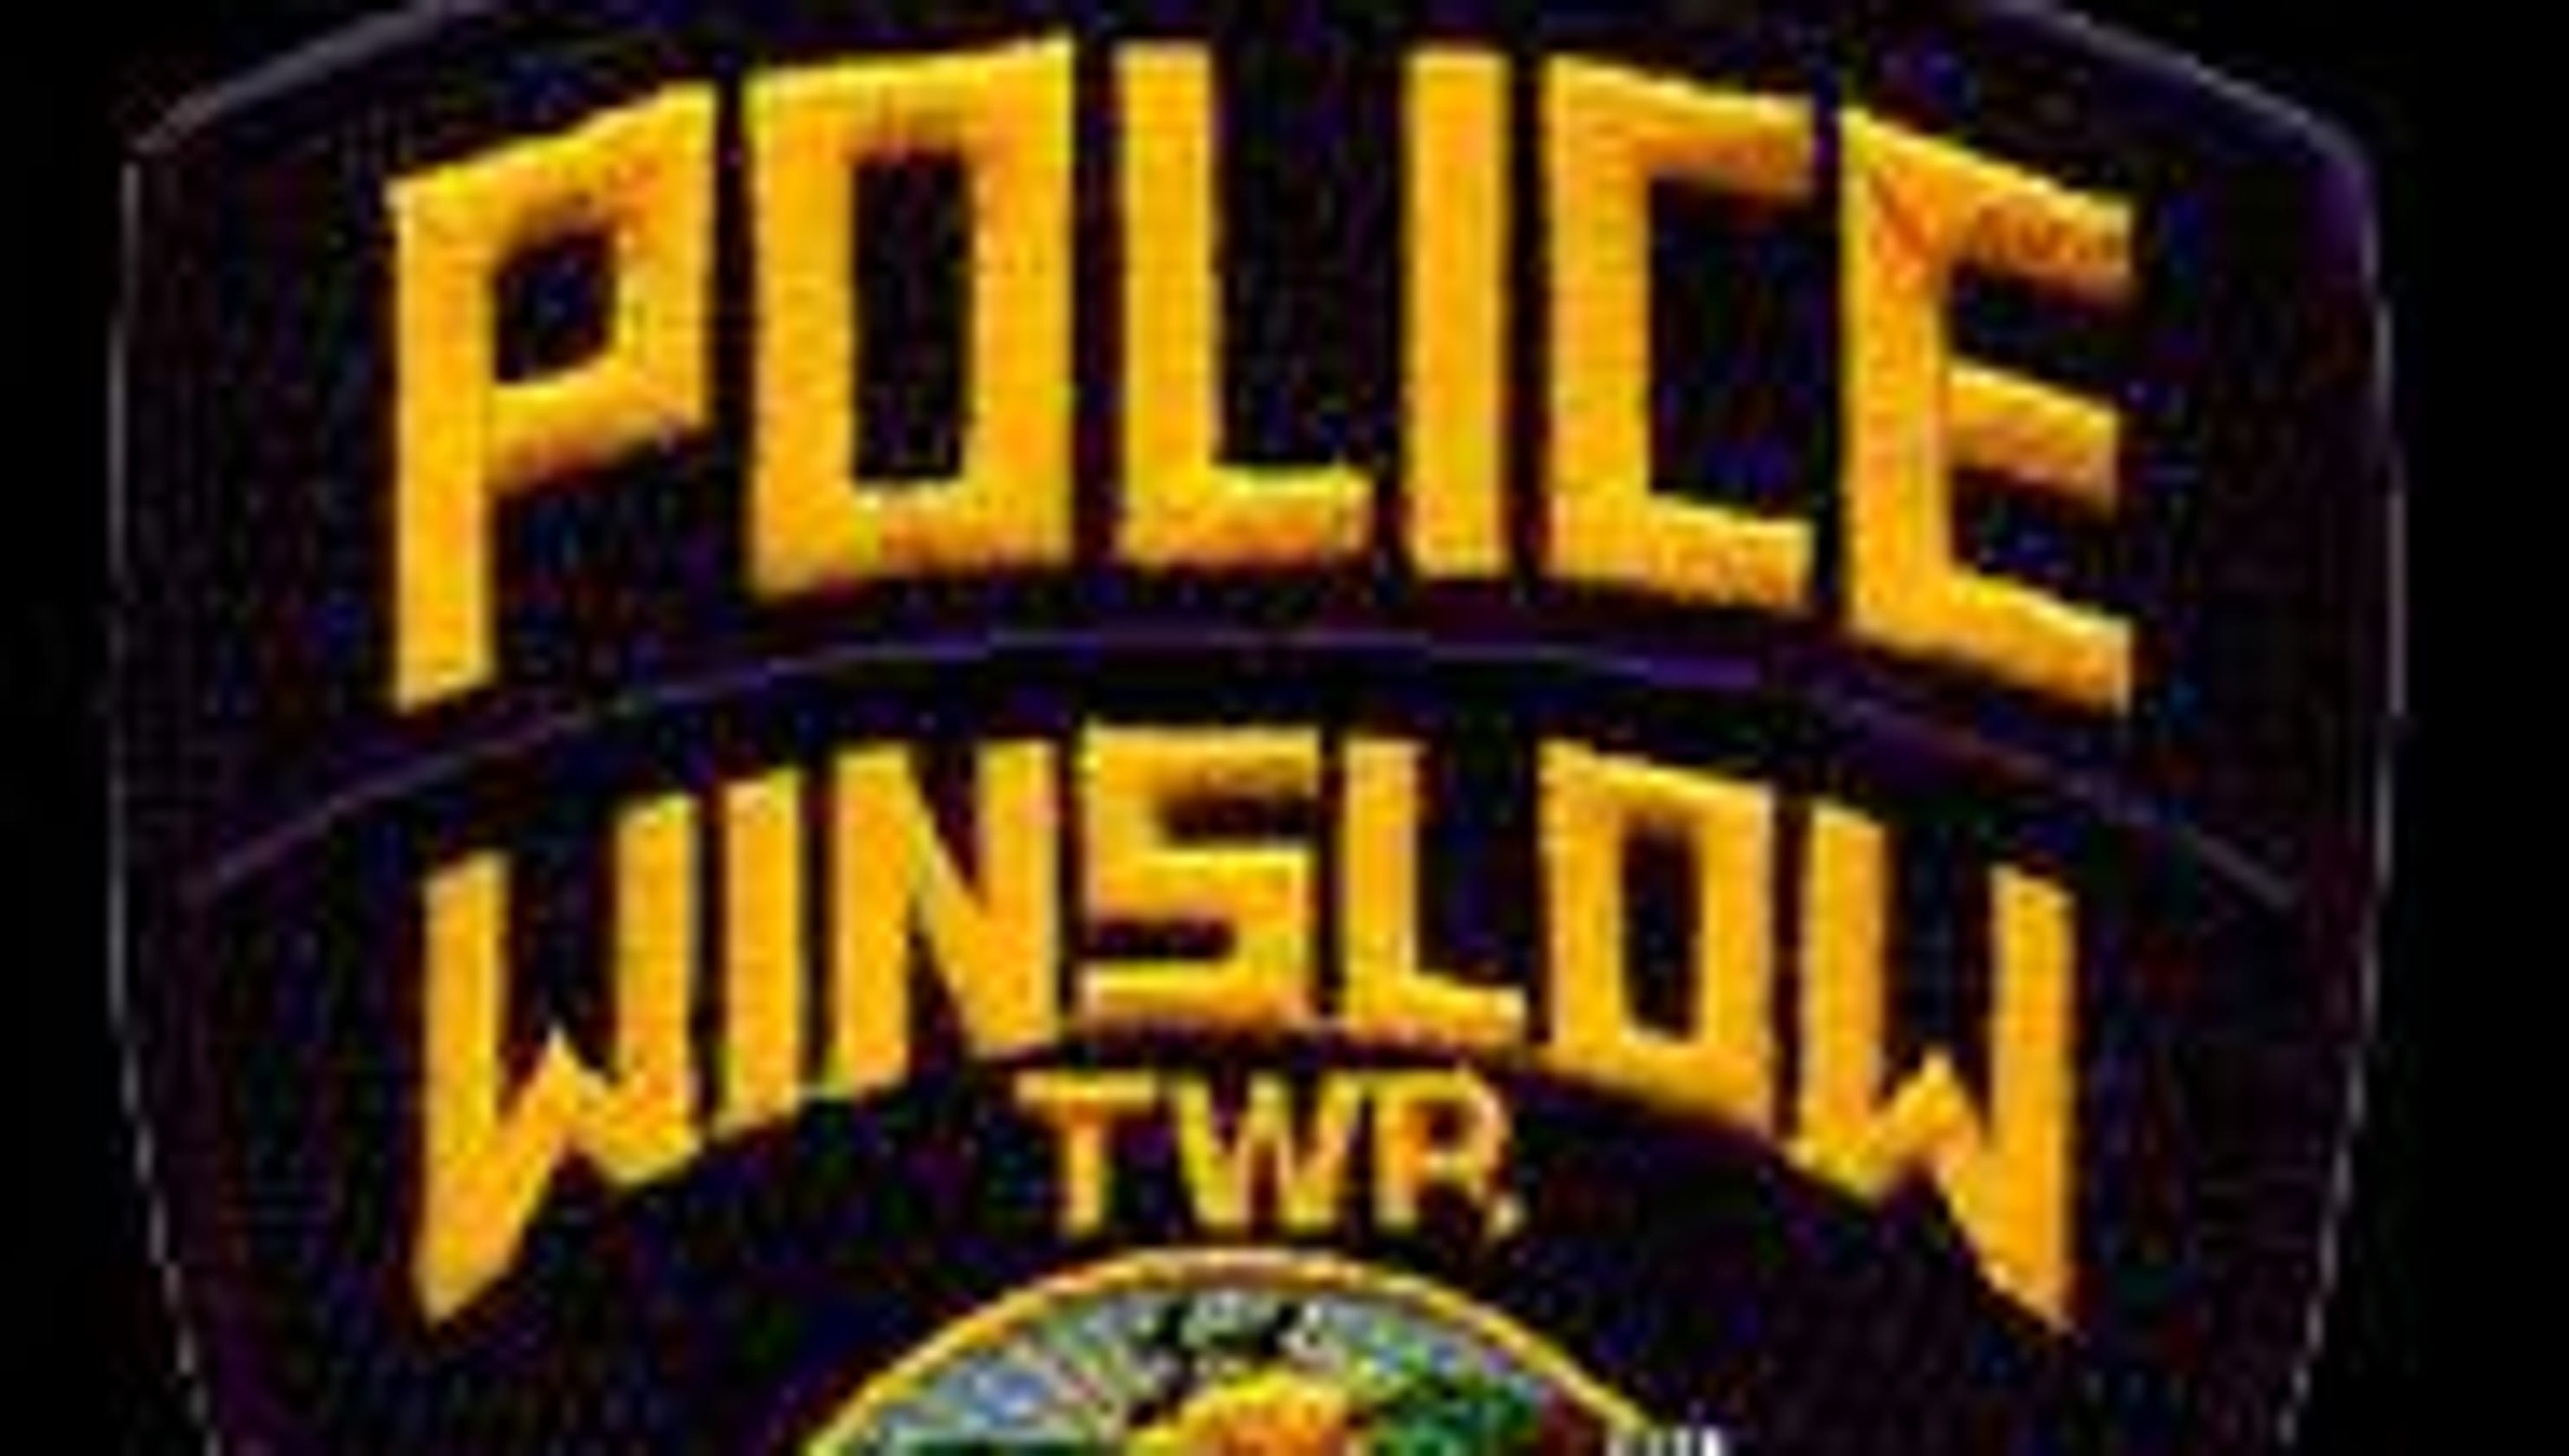 Jonathan and Sean Ryker of Winslow allegedly had 65 fake licenses